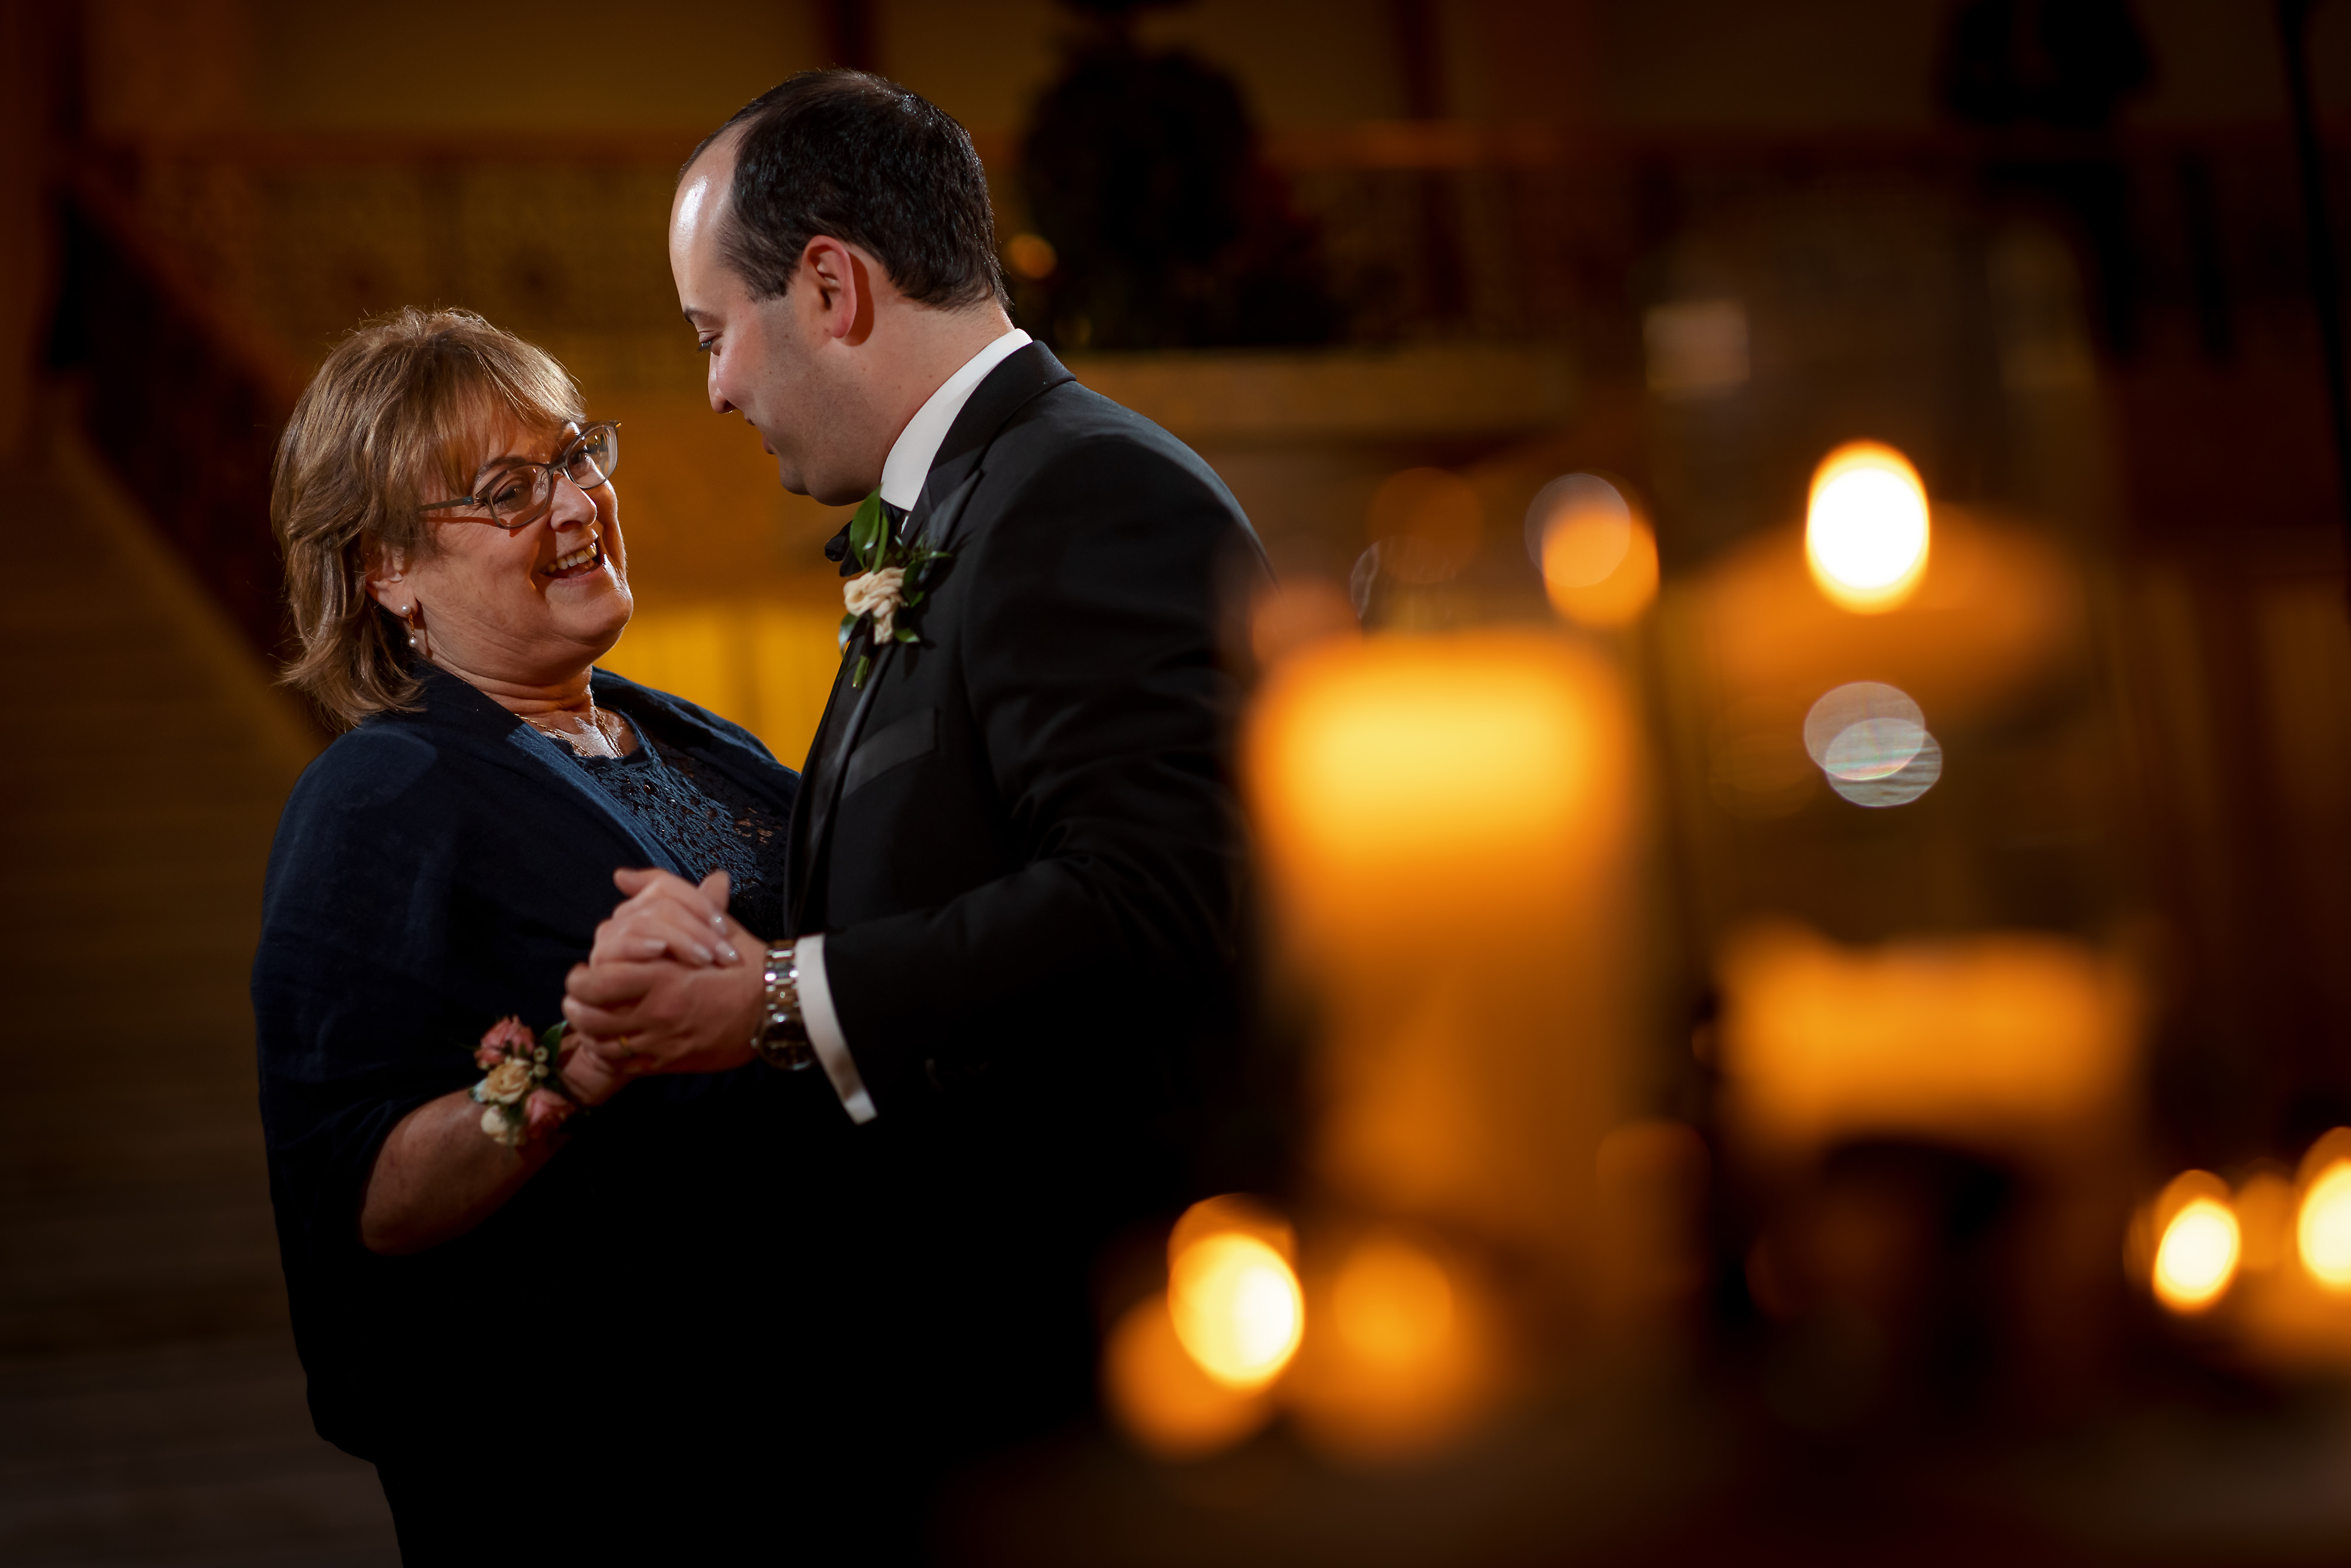 Groom dances with mother during wedding reception at the Rookery Building in Chicago